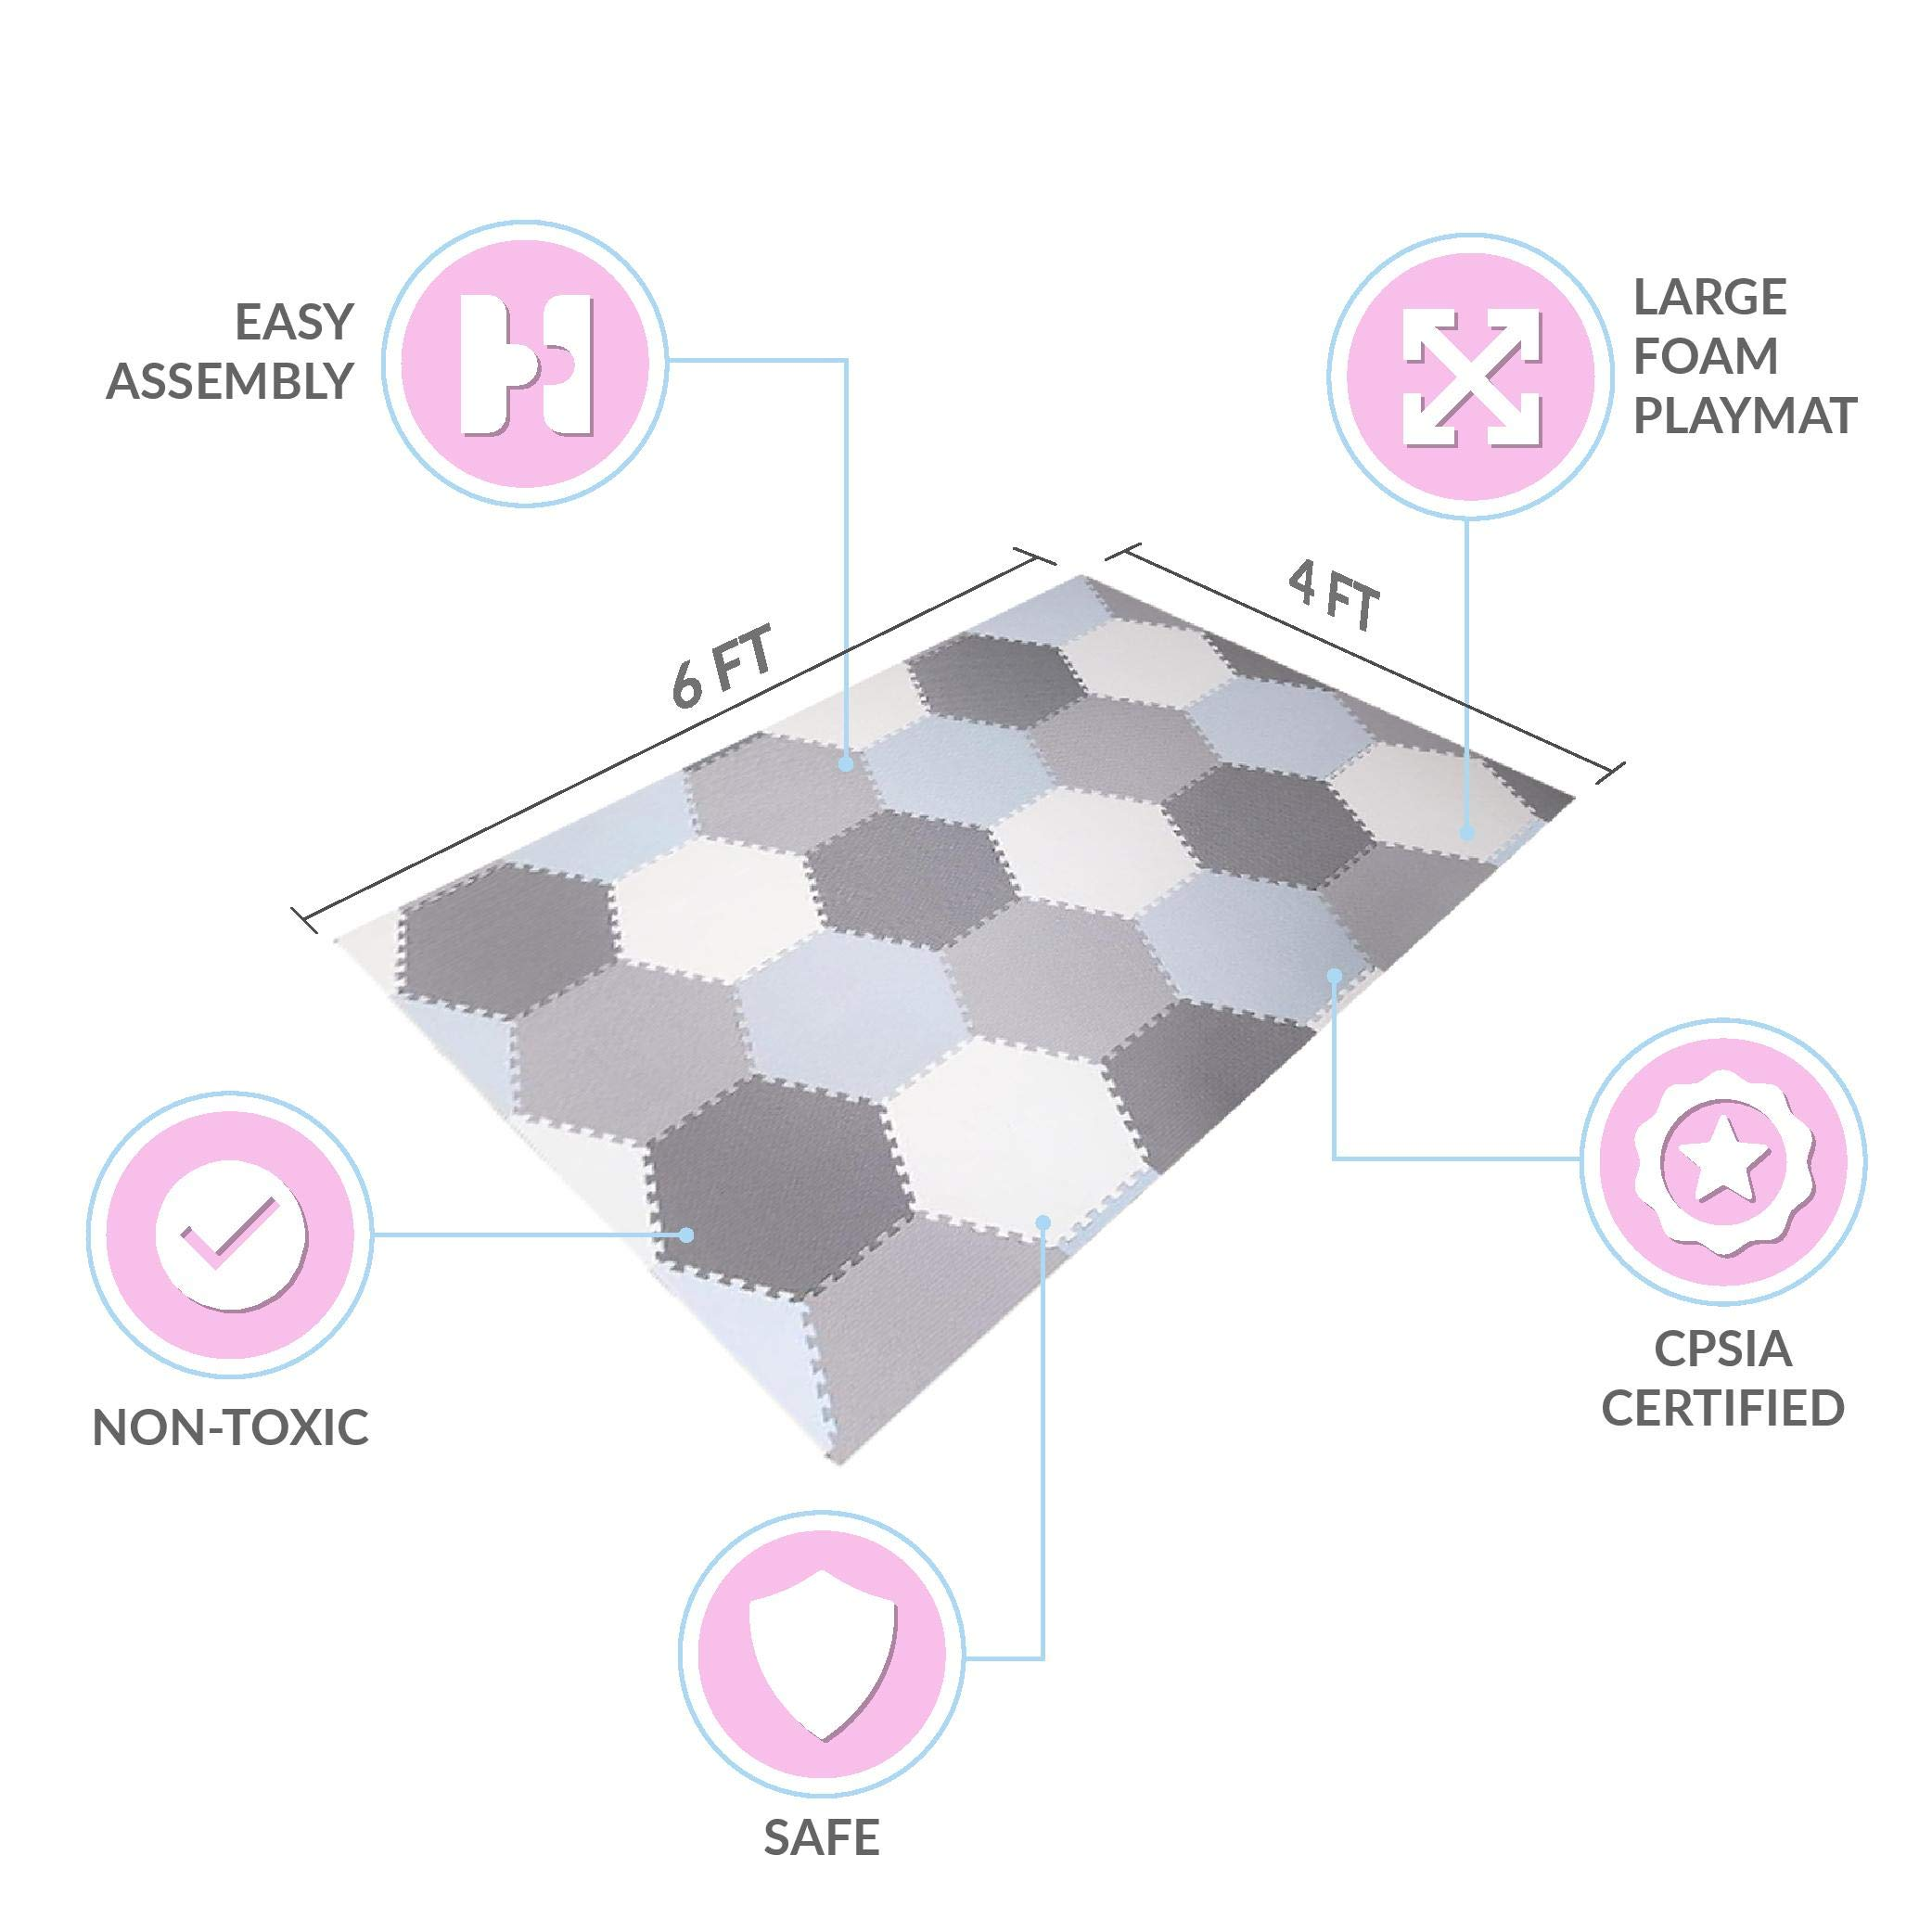 Baby Brielle Interlocking Hexagon Floor Foam Tile Activity Mat for Tummy Time, Crawling, and Playing Ultra Thickness Playmat for Infants and Toddlers for Nursery Room in Grey/White by Baby Brielle